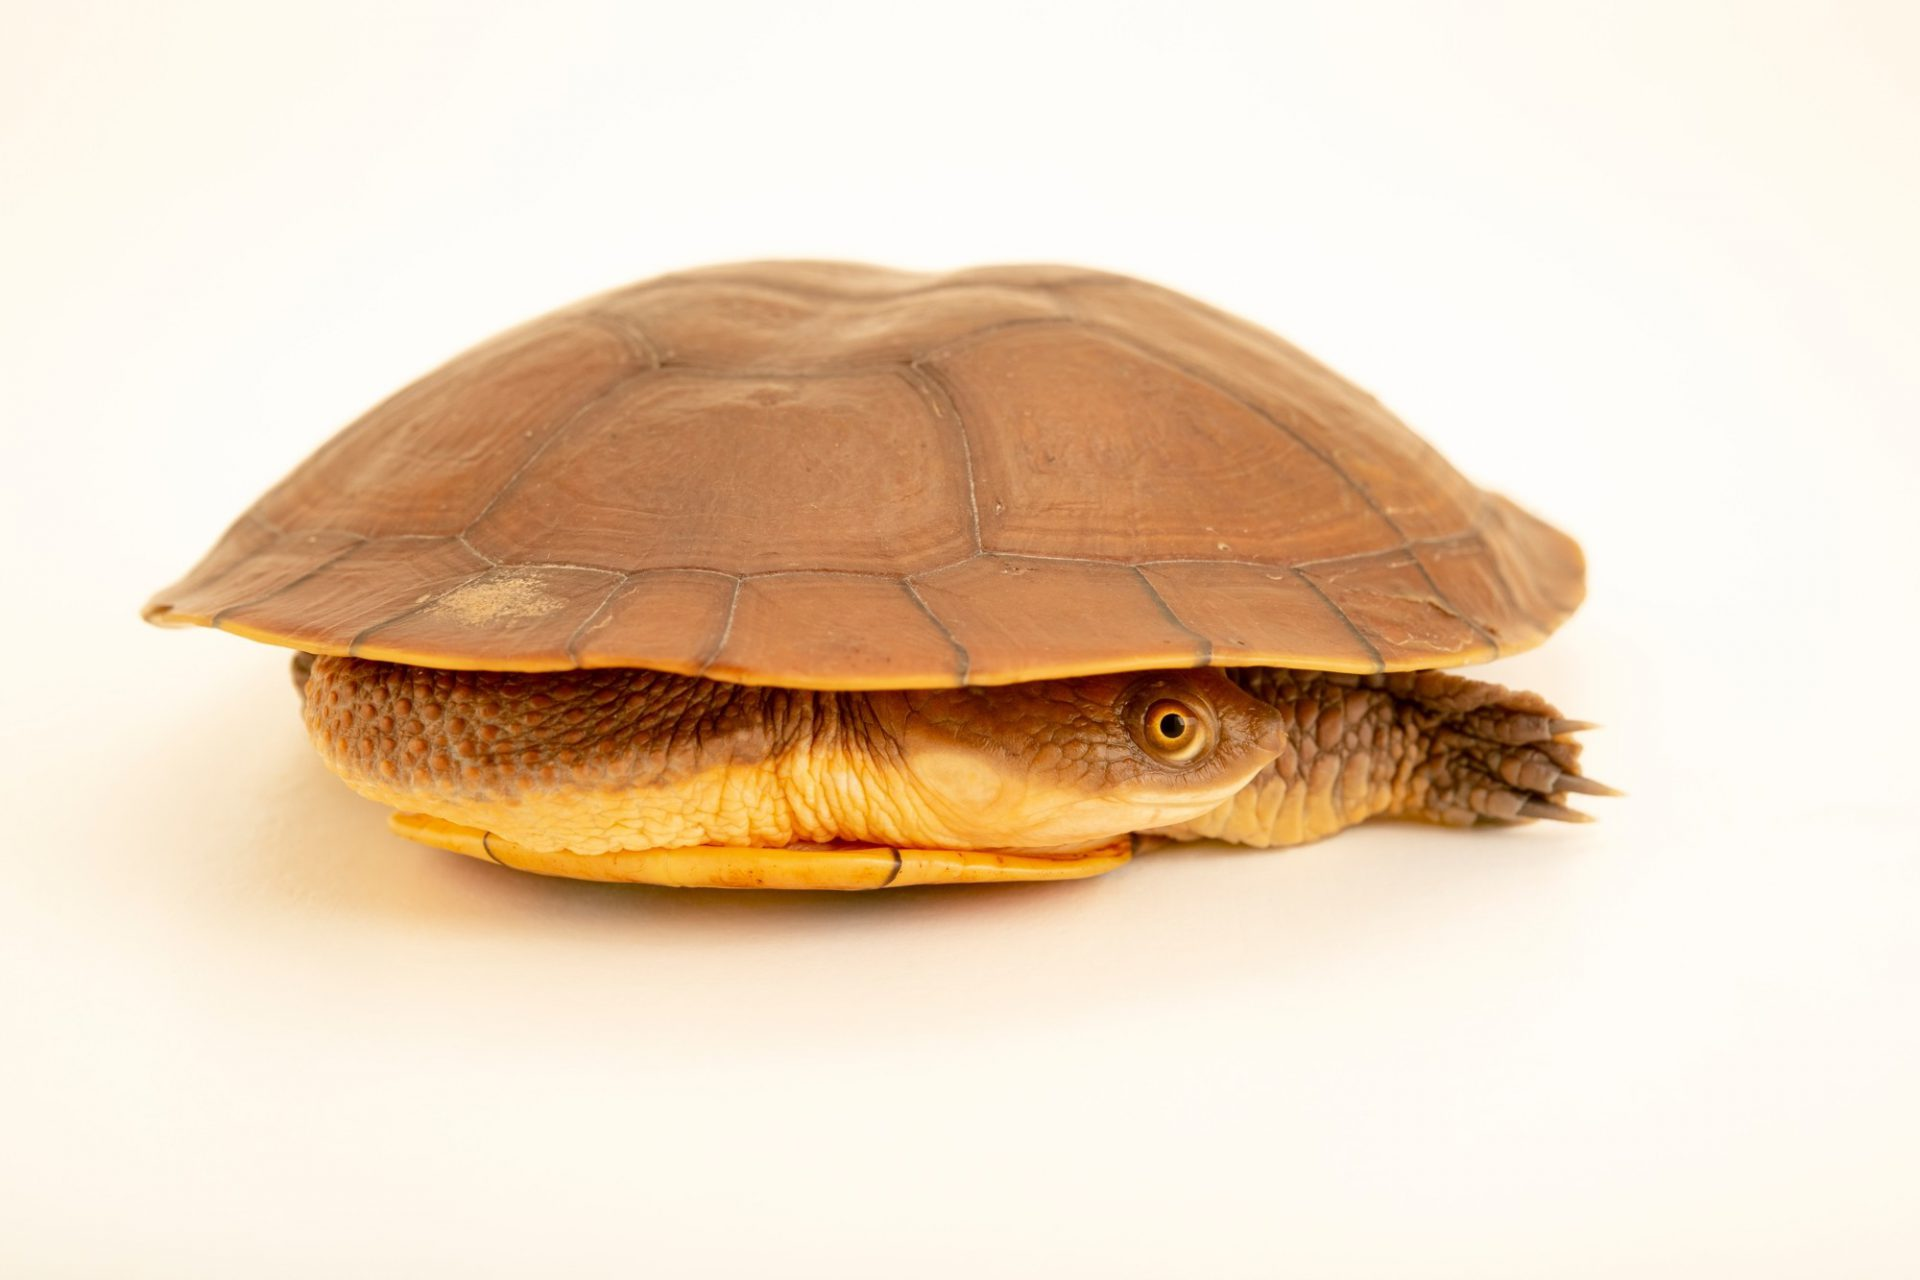 Photo: A Steindachner's turtle (Chelodina steindachneri) at a private collection in Jakarta, Indonesia.